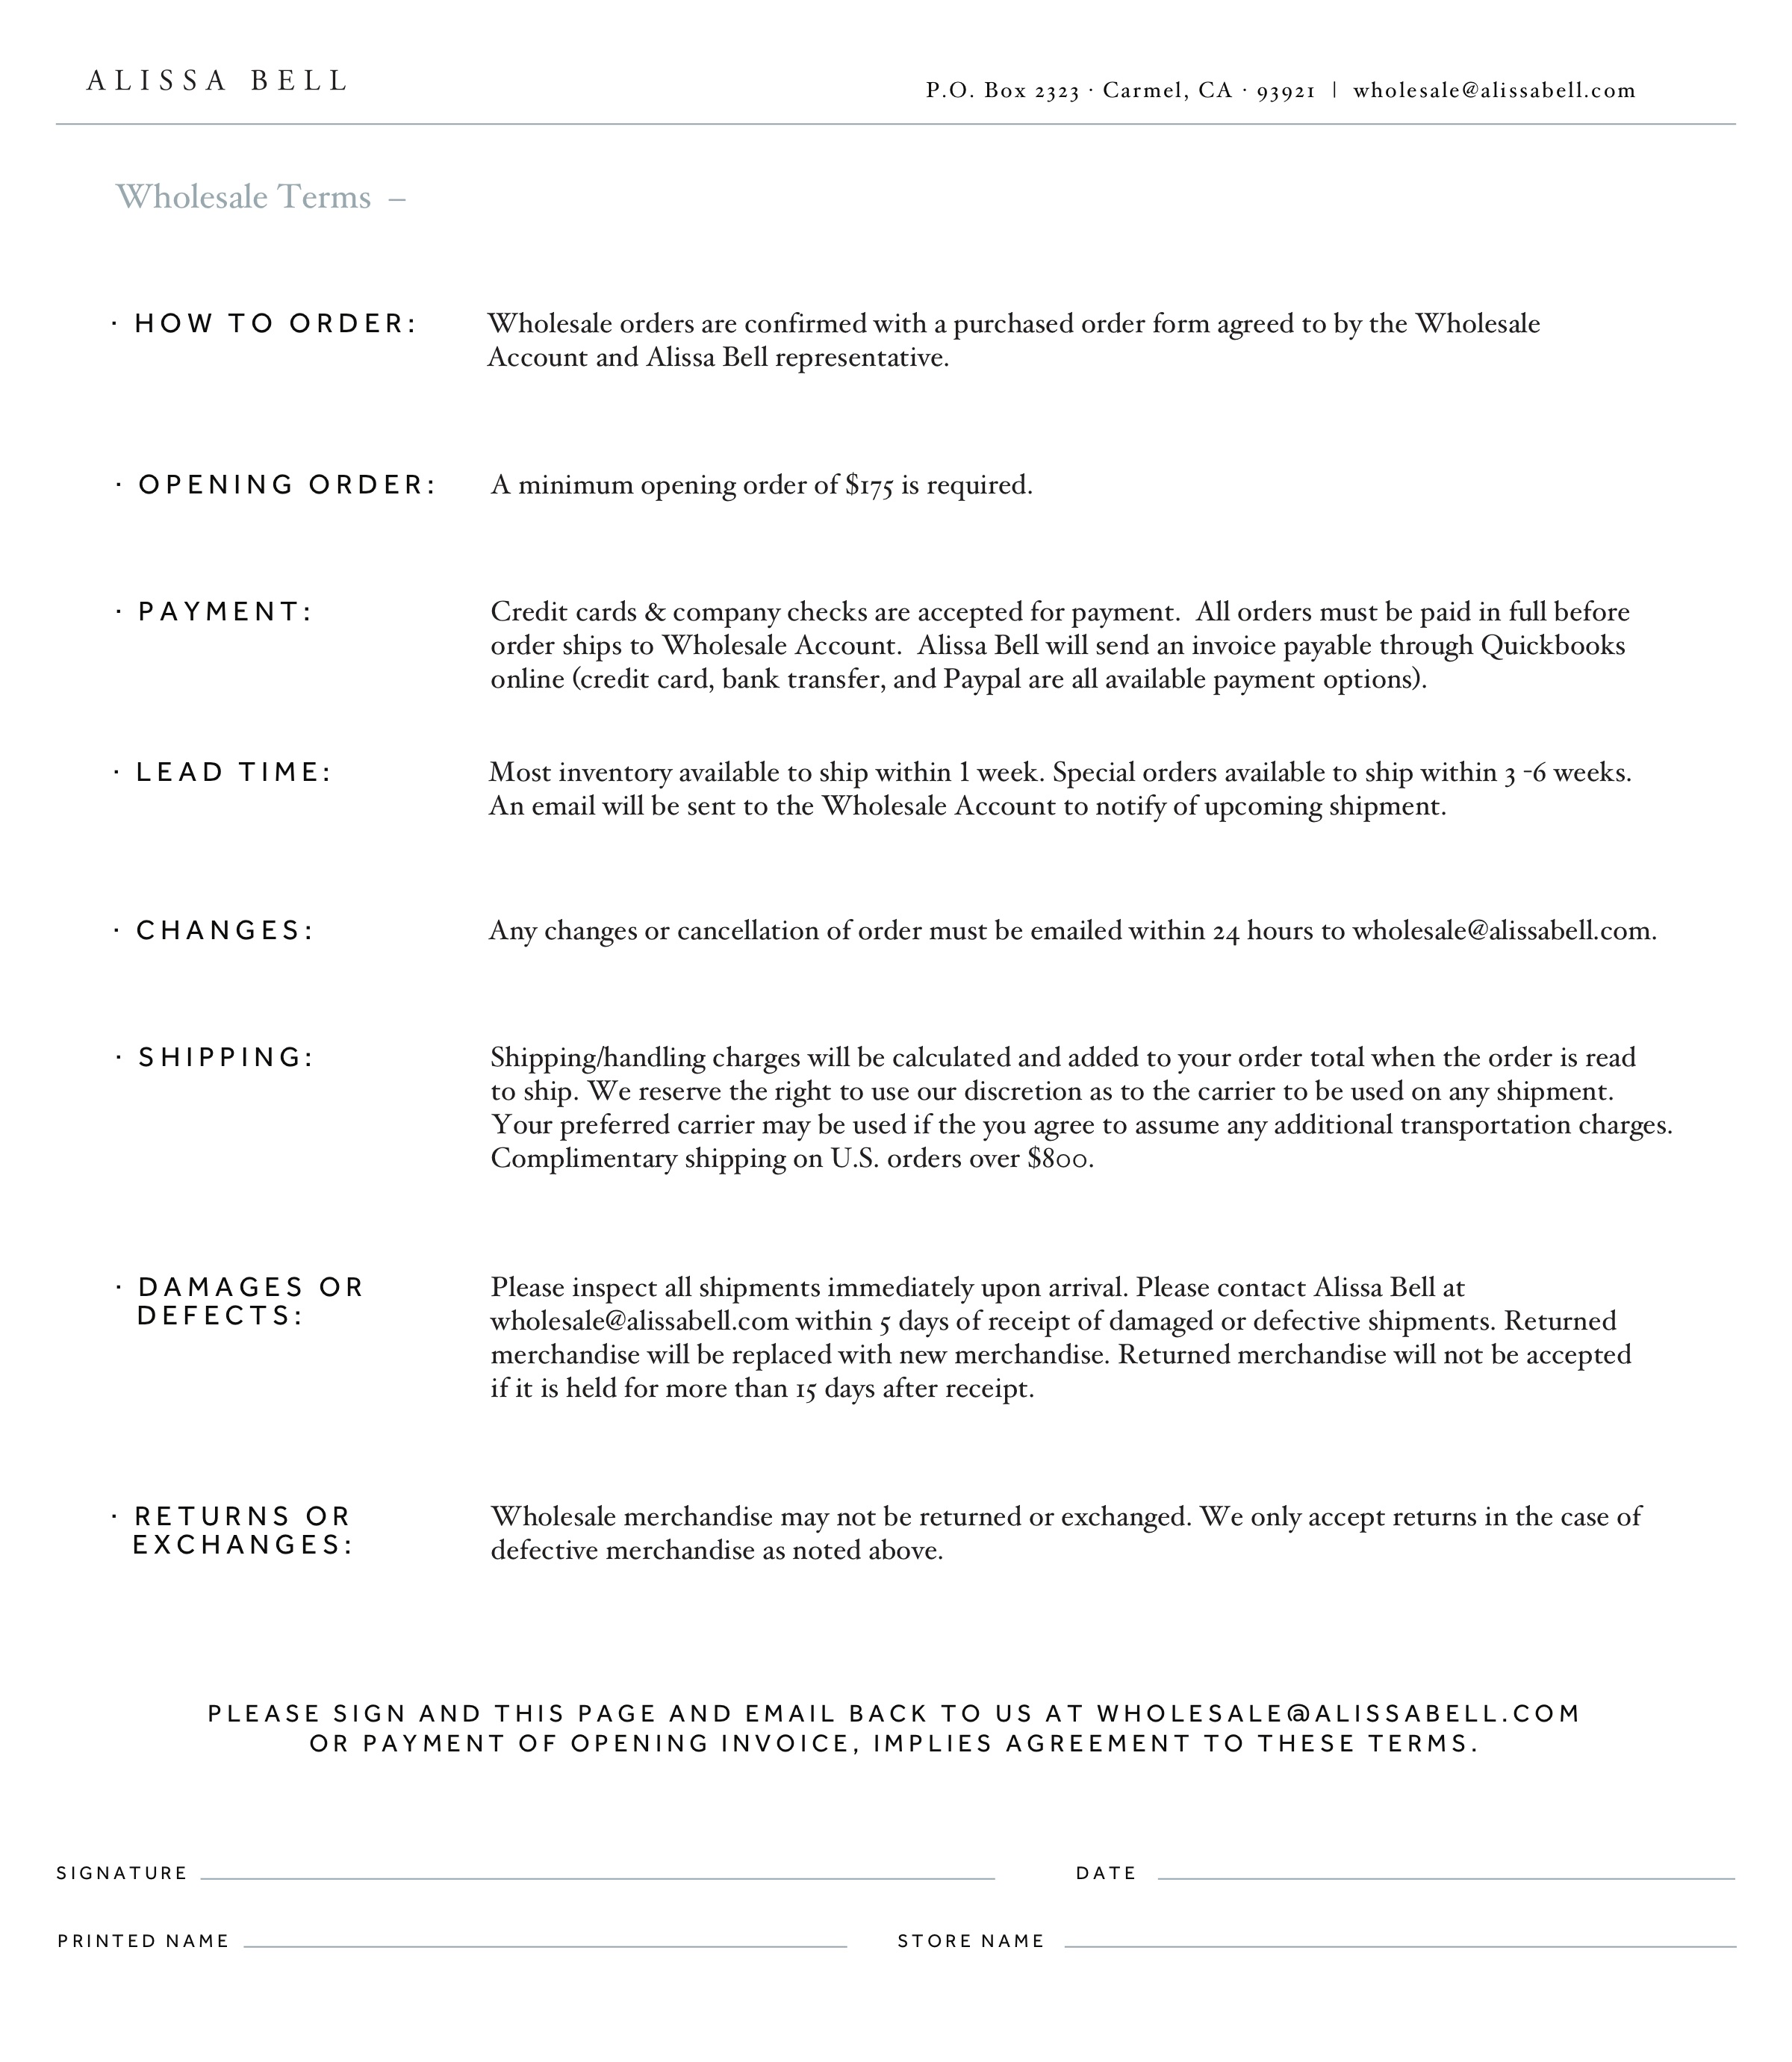 2018 Terms & Conditions - for wb.jpg